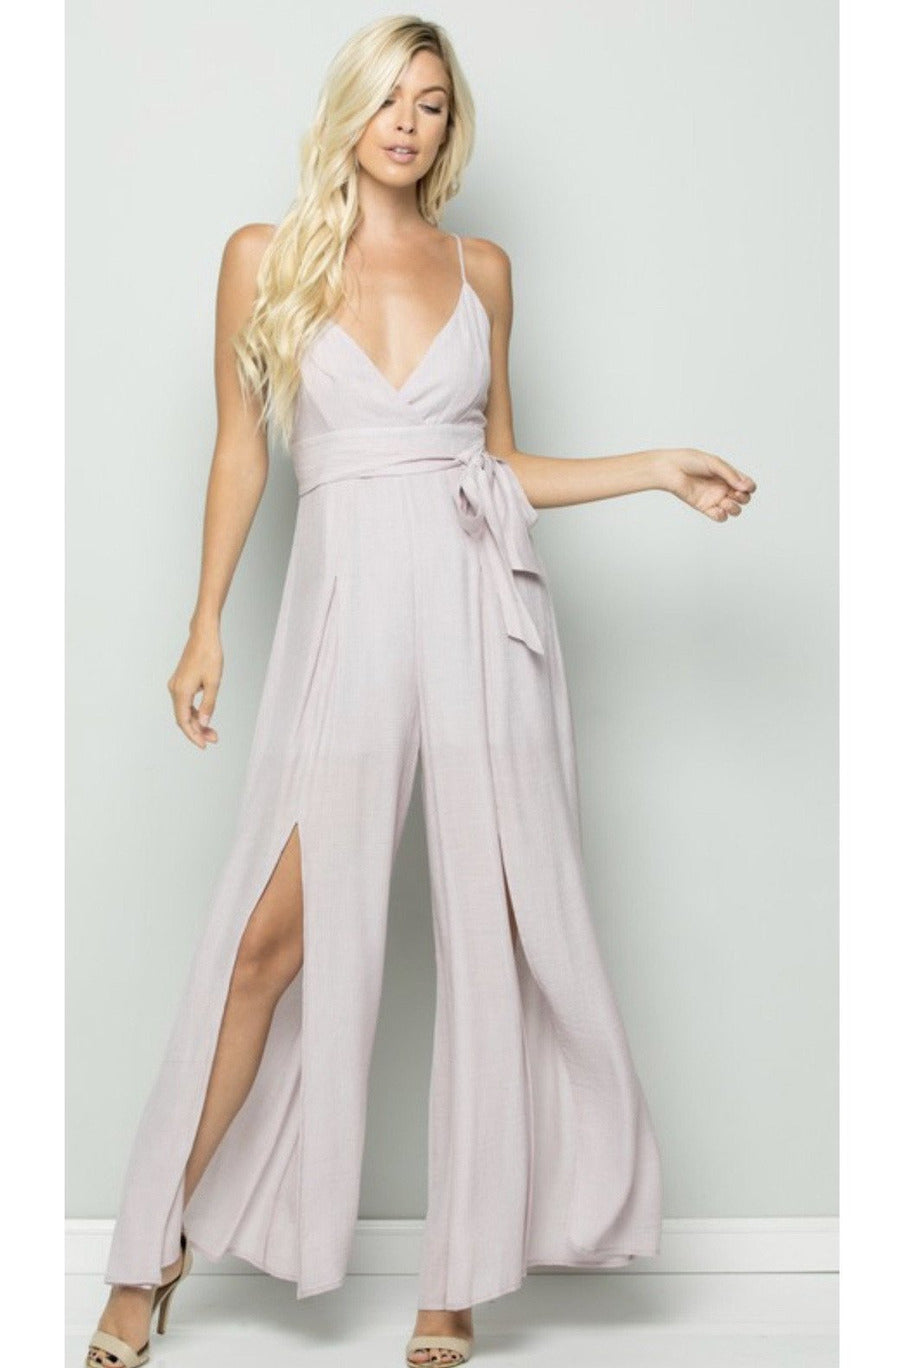 Take Me With You Jumpsuit - Indigo Closet